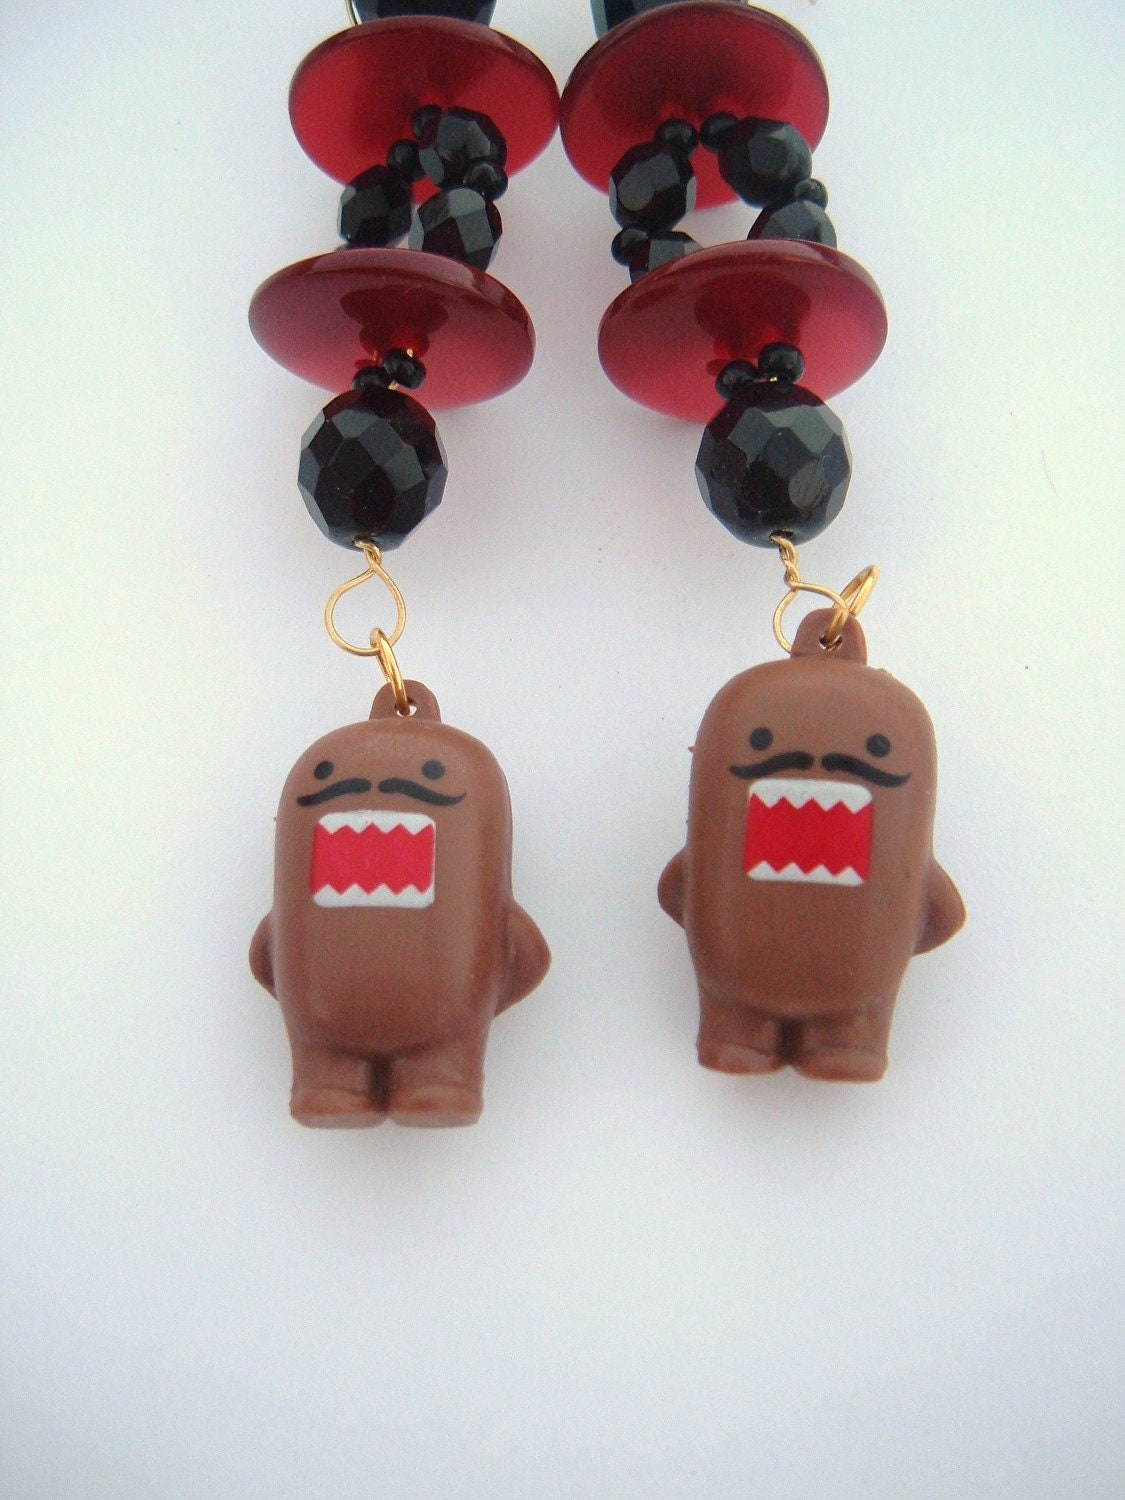 Domo earrings recycled vintage kitsch mustache red and black danglers